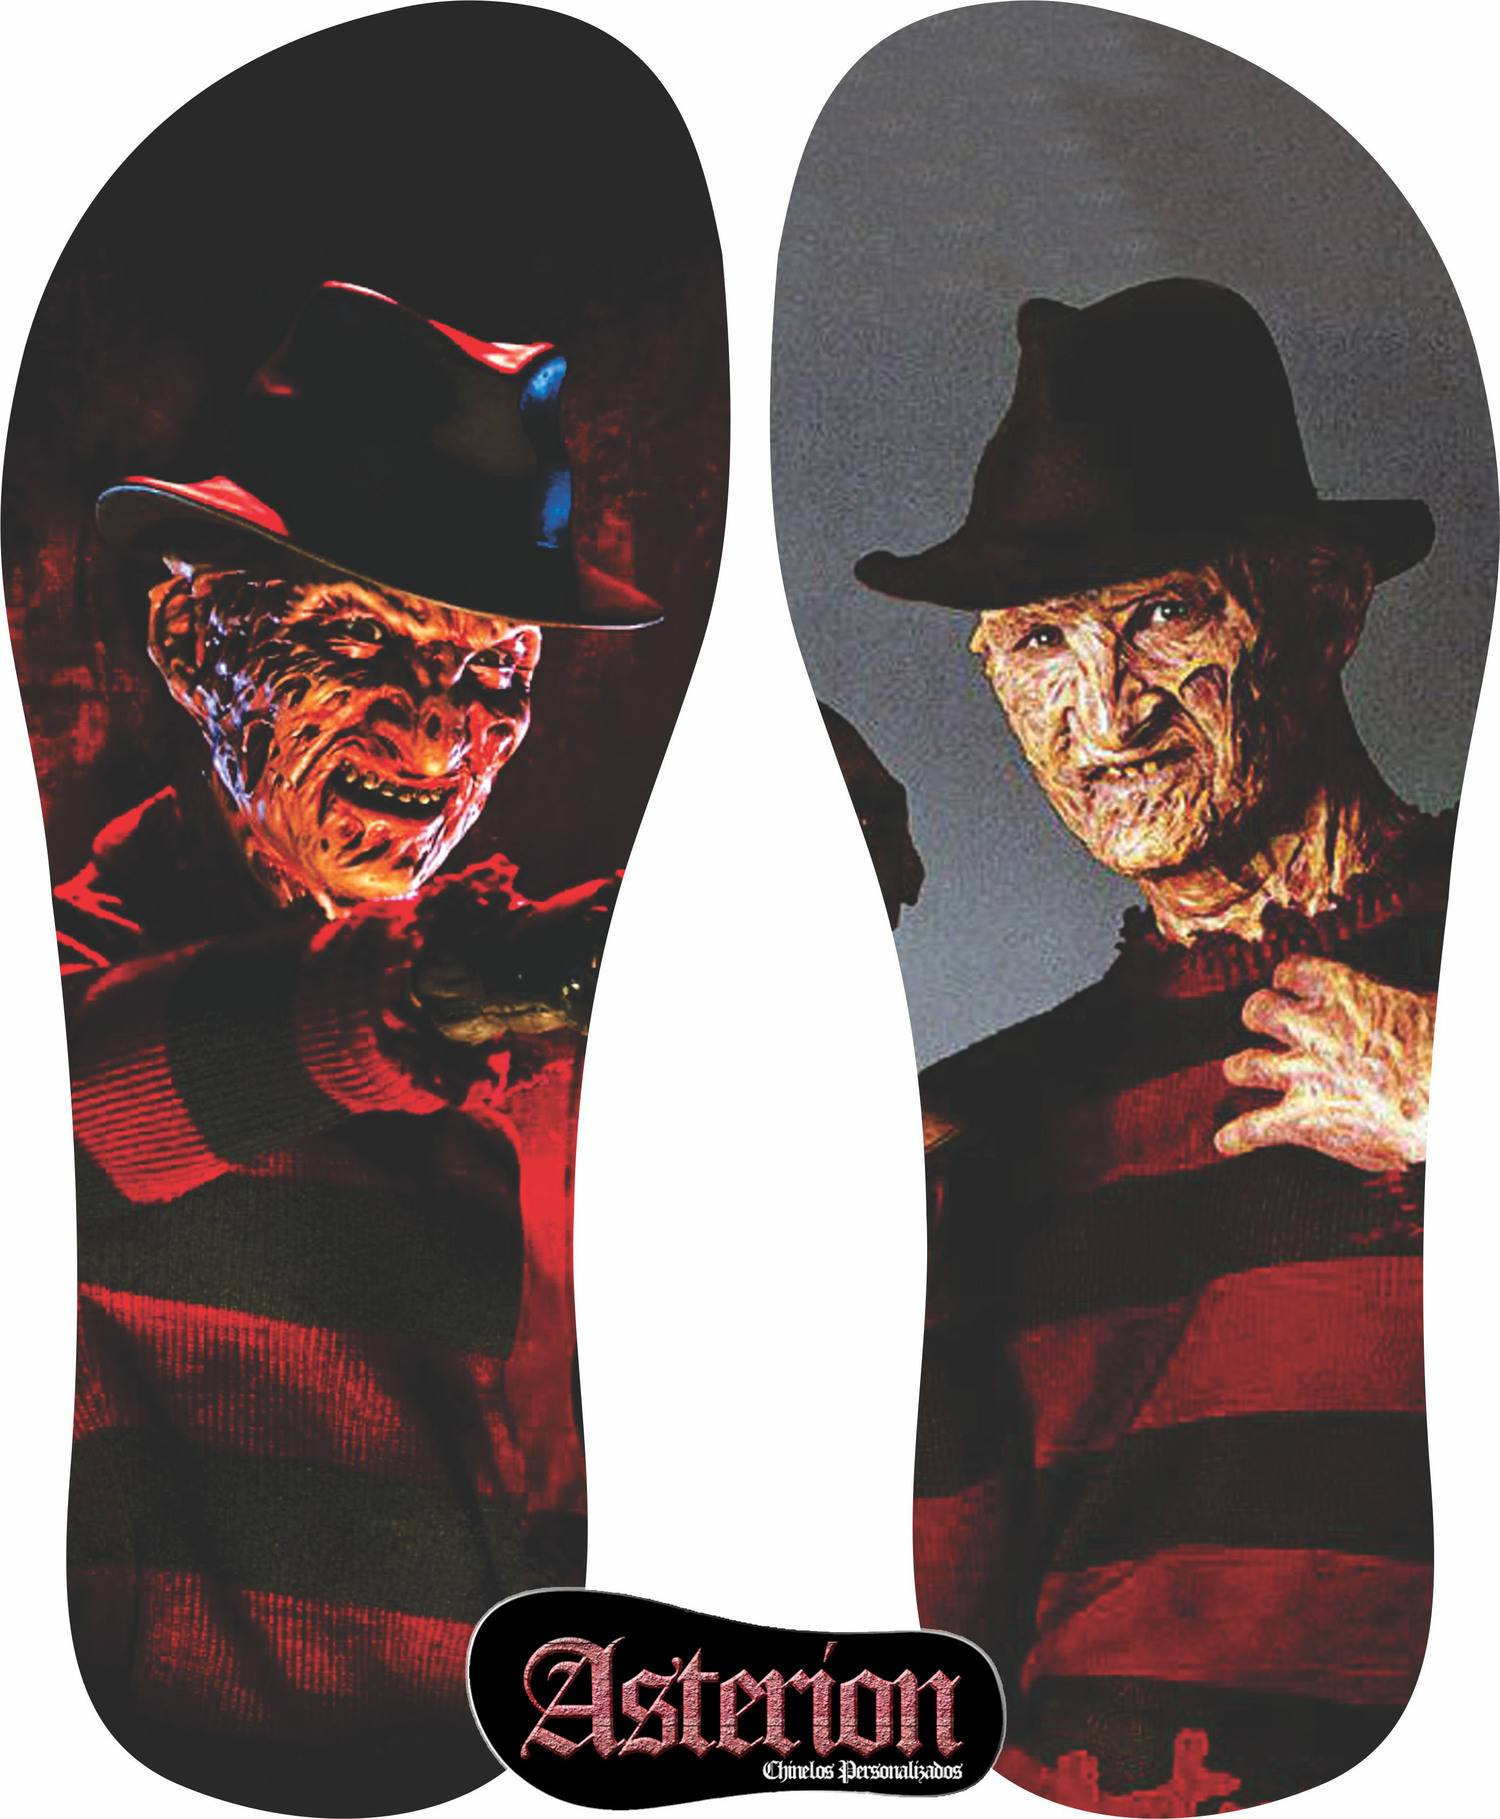 Chinelo Freddy Krueger – Asterion Chinelos Personalizados